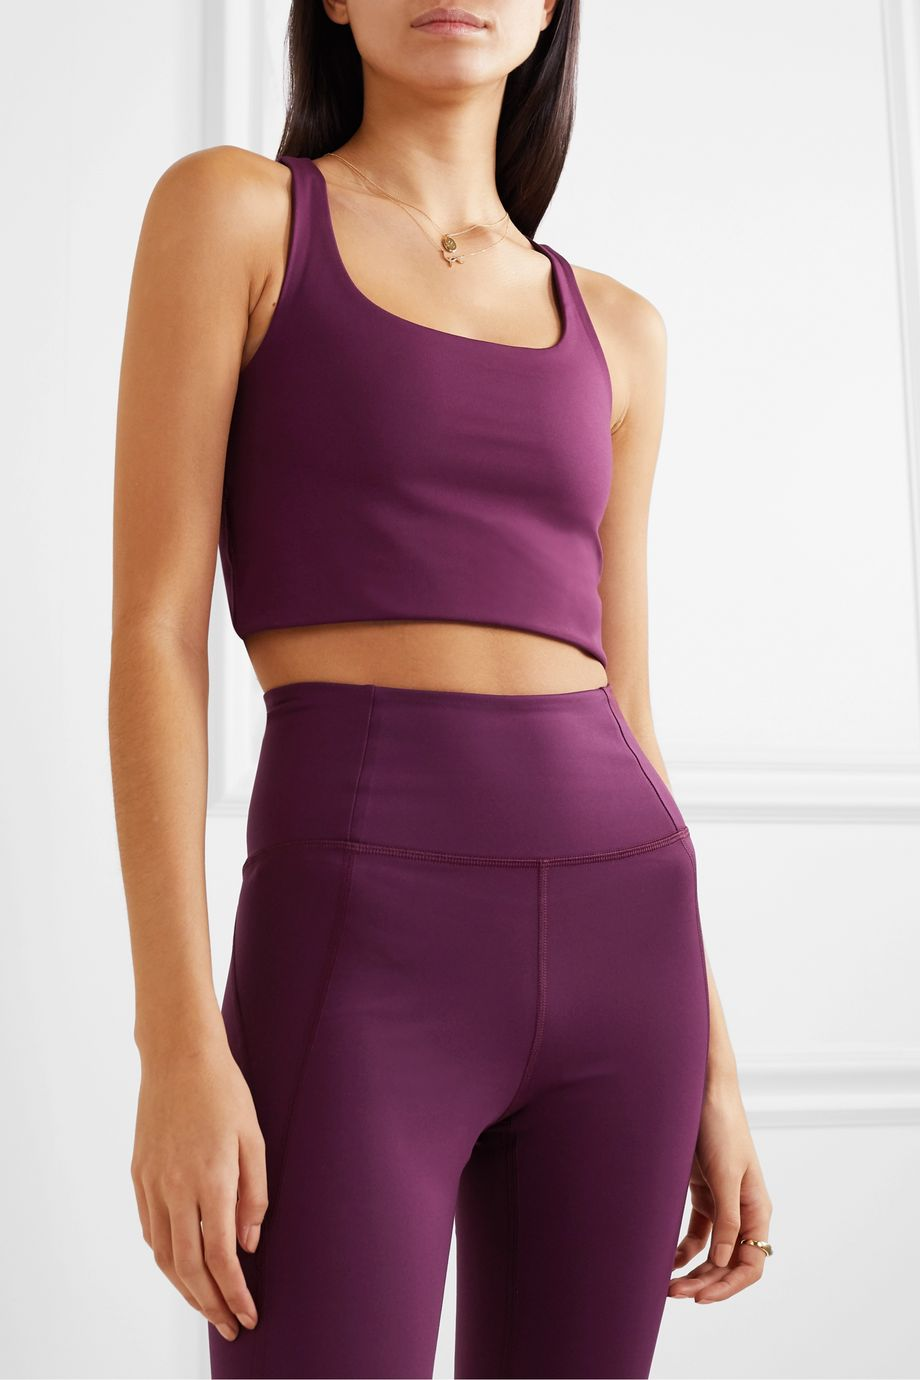 Girlfriend Collective Paloma stretch sports bra